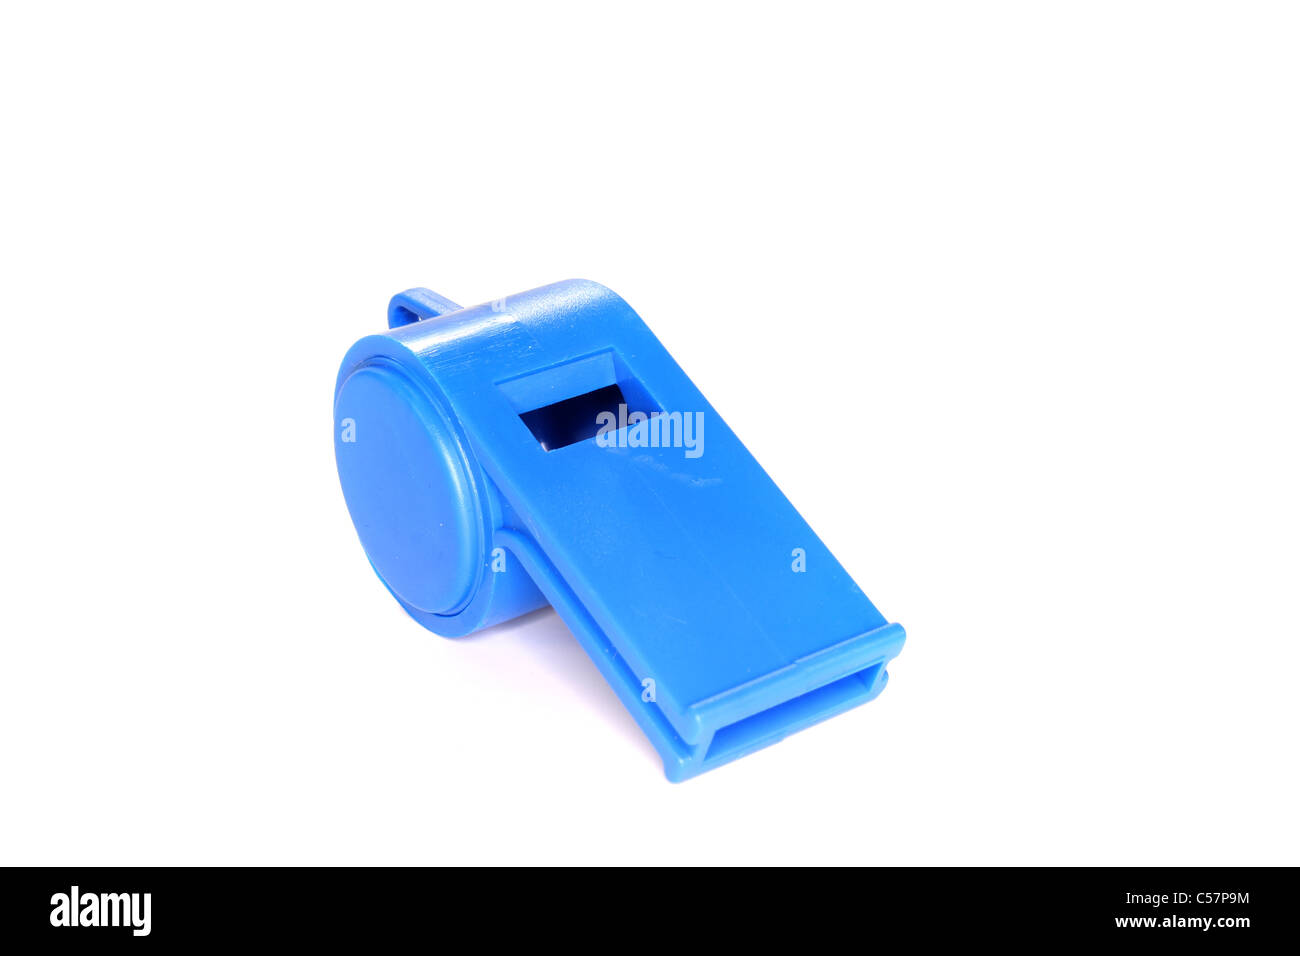 blue Trill whistle on a white background - Stock Image